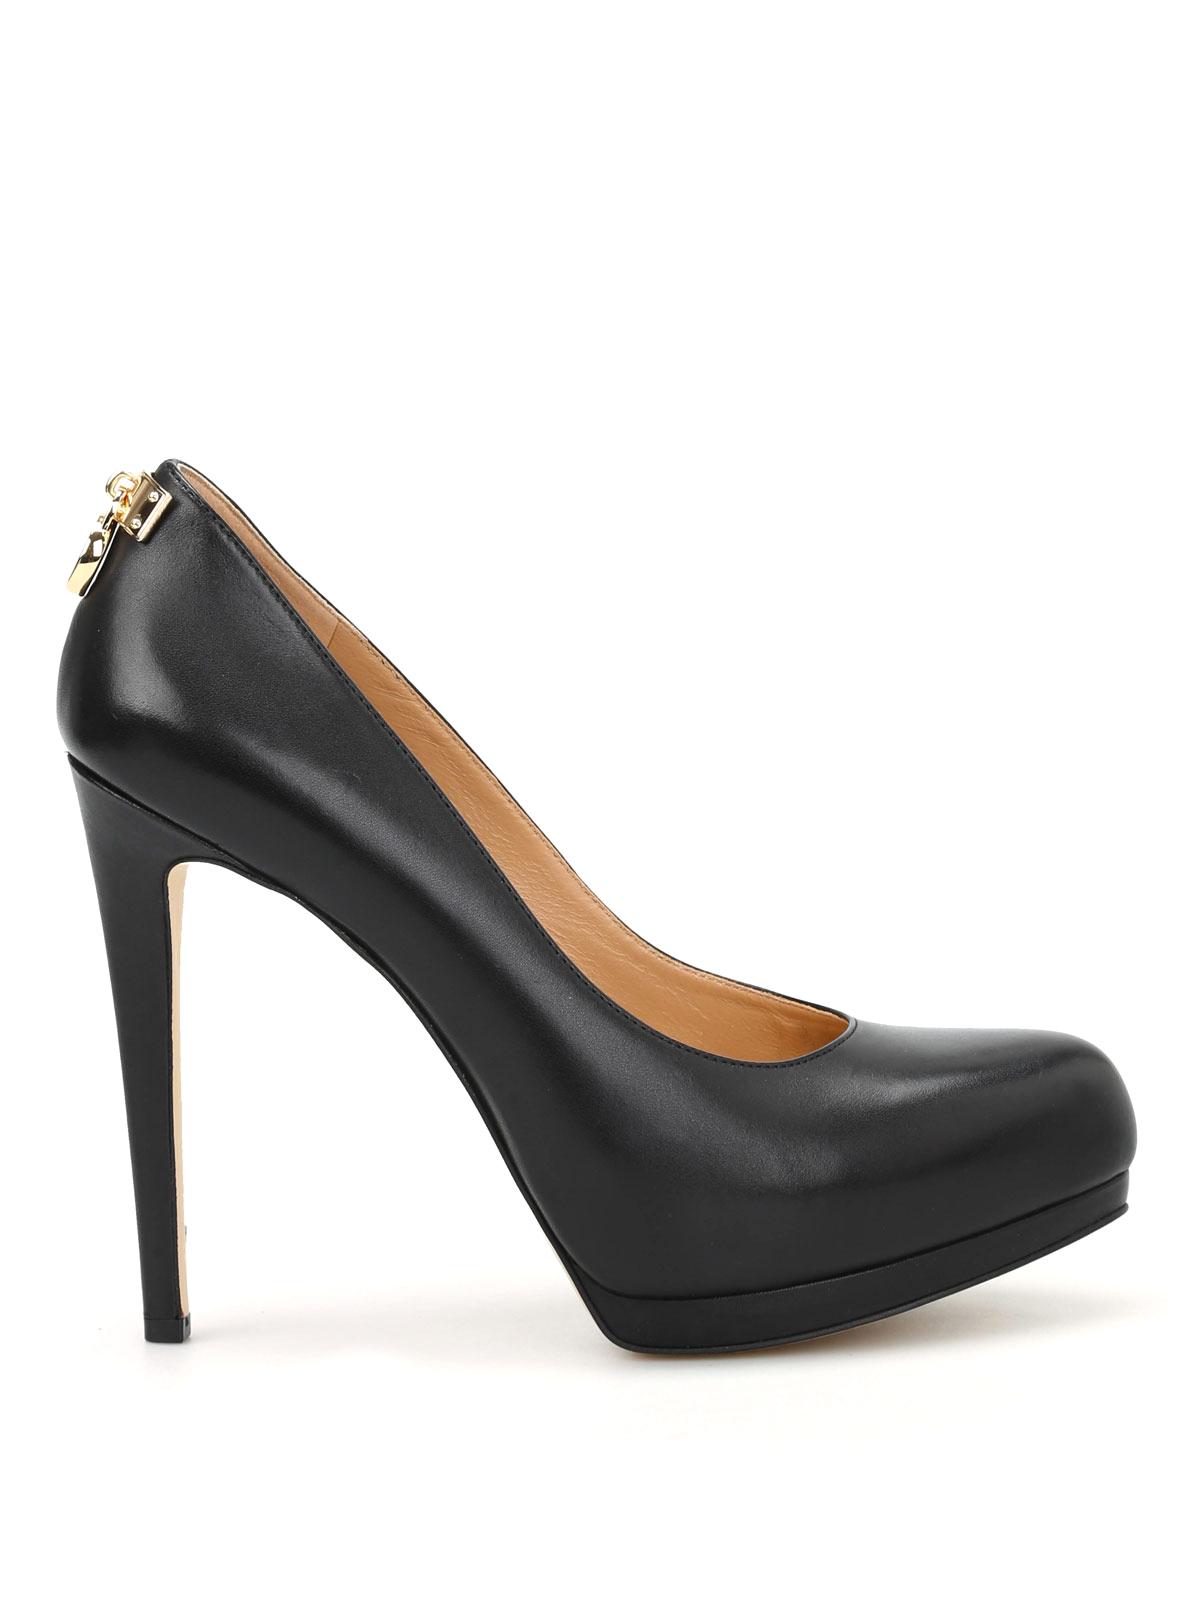 Michael Kors Hamilton Laukku : Hamilton leather pumps by michael kors court shoes ikrix